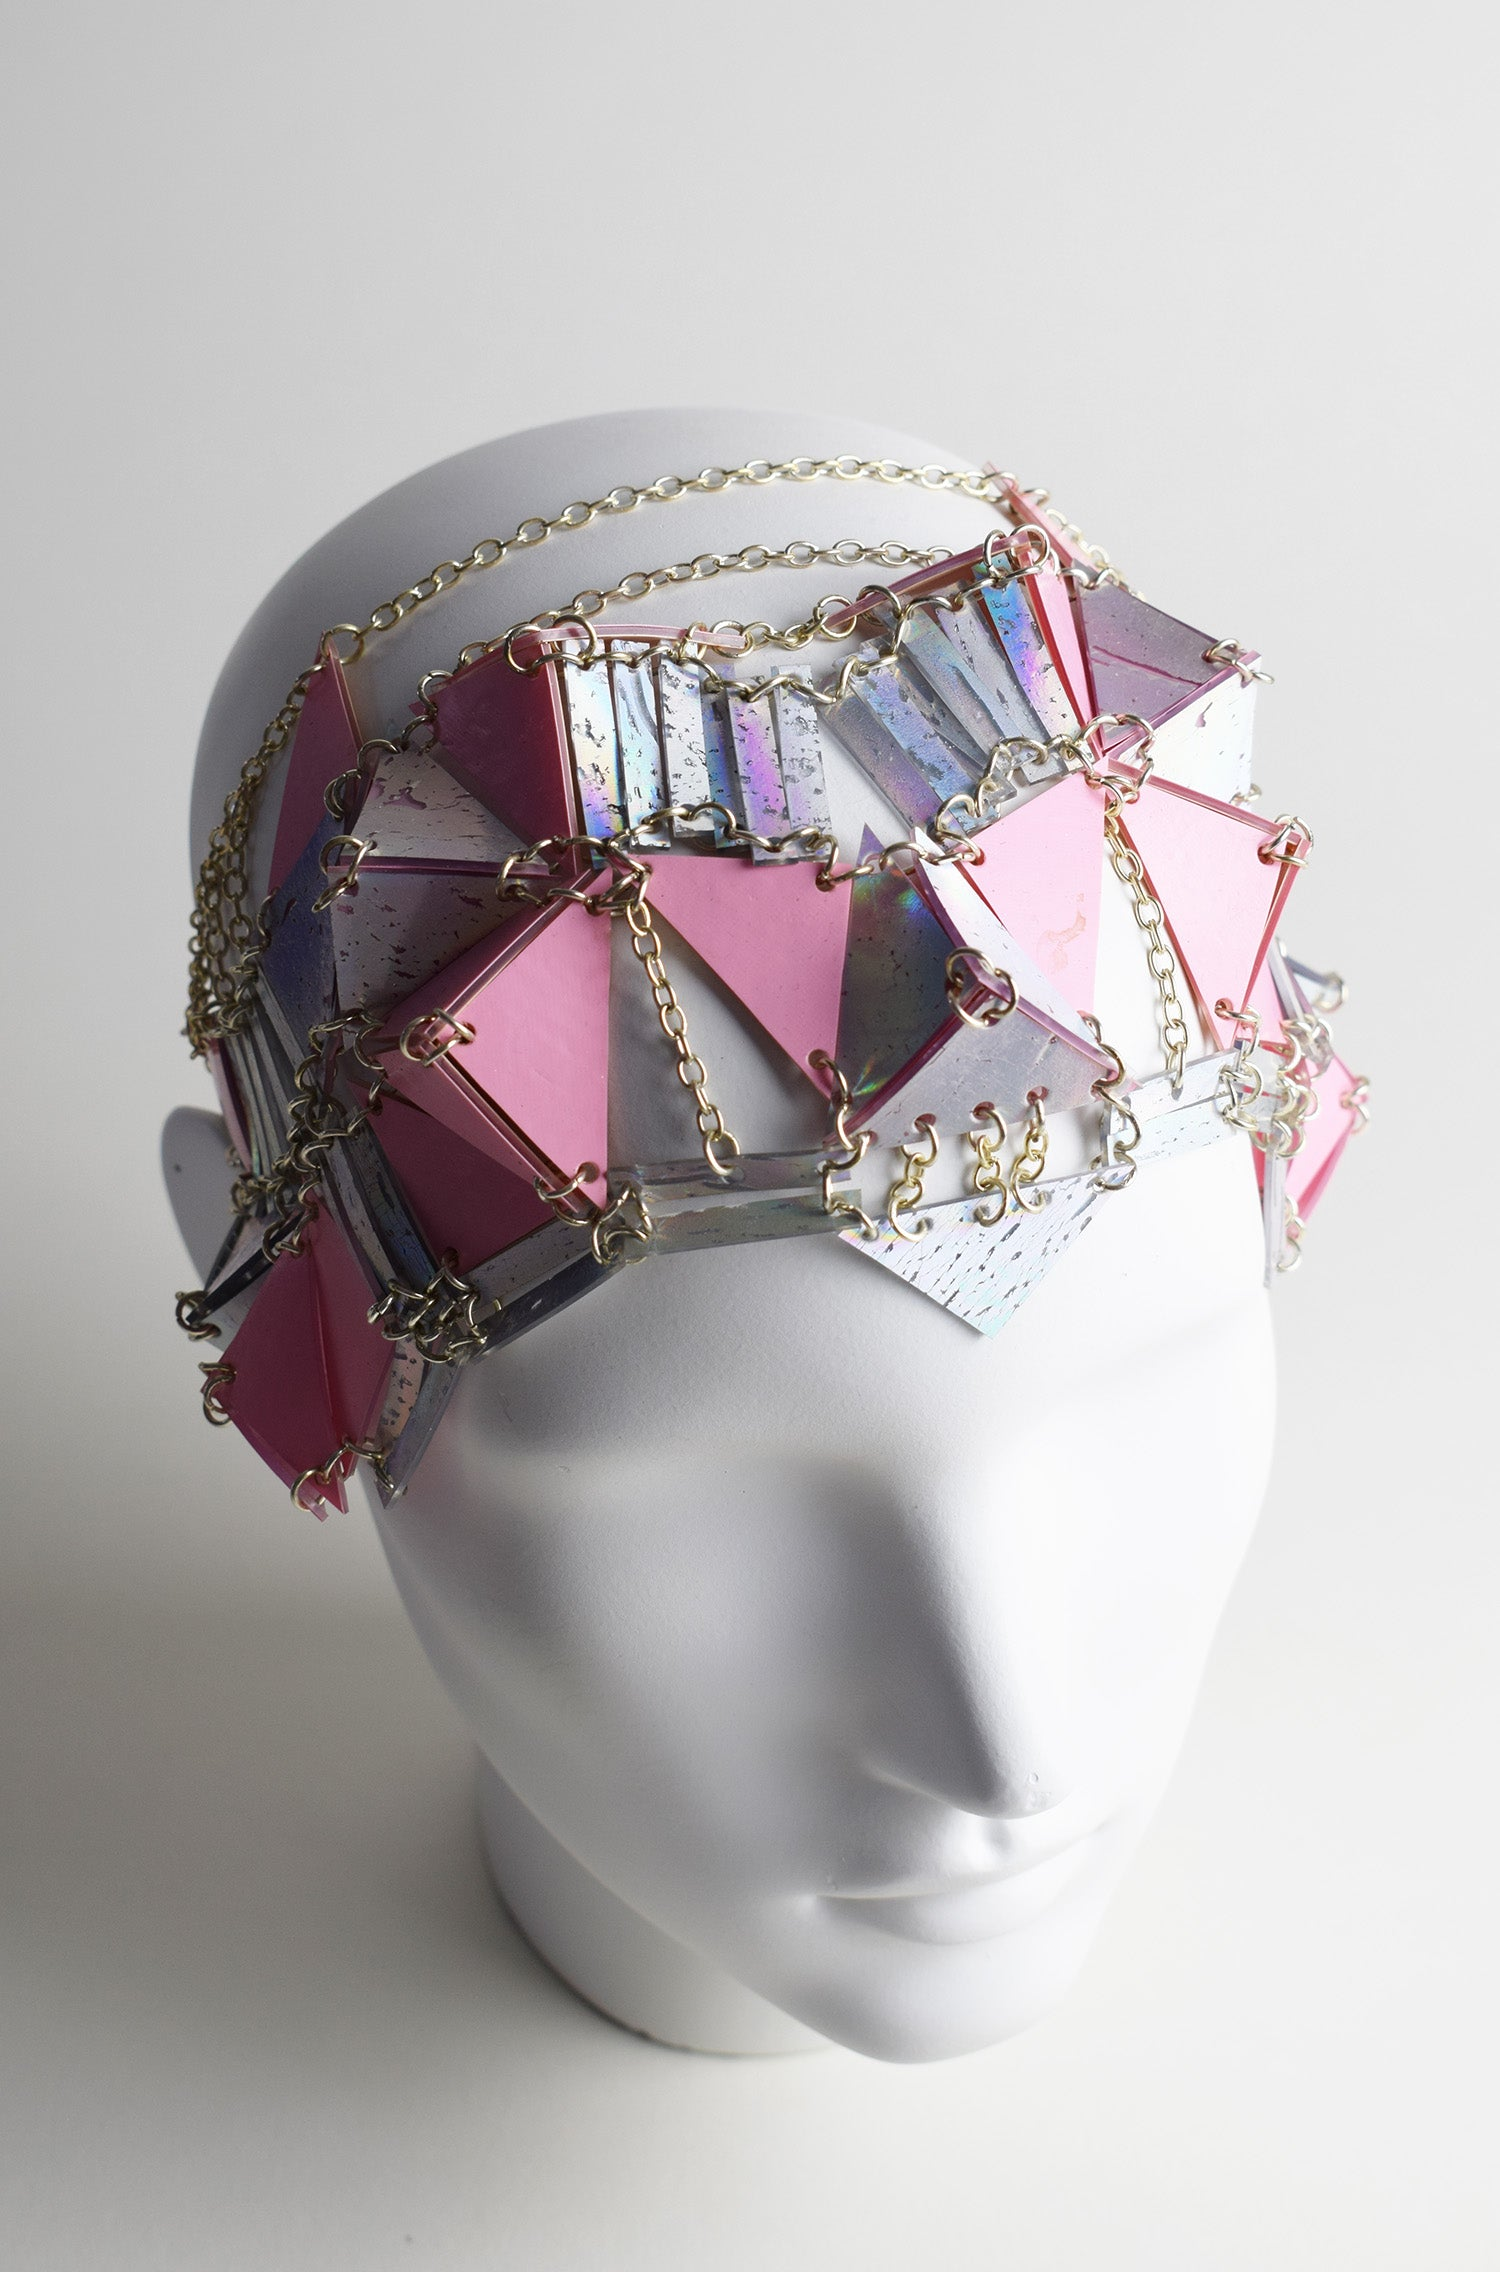 LARGE PYRAMID HEADPIECE